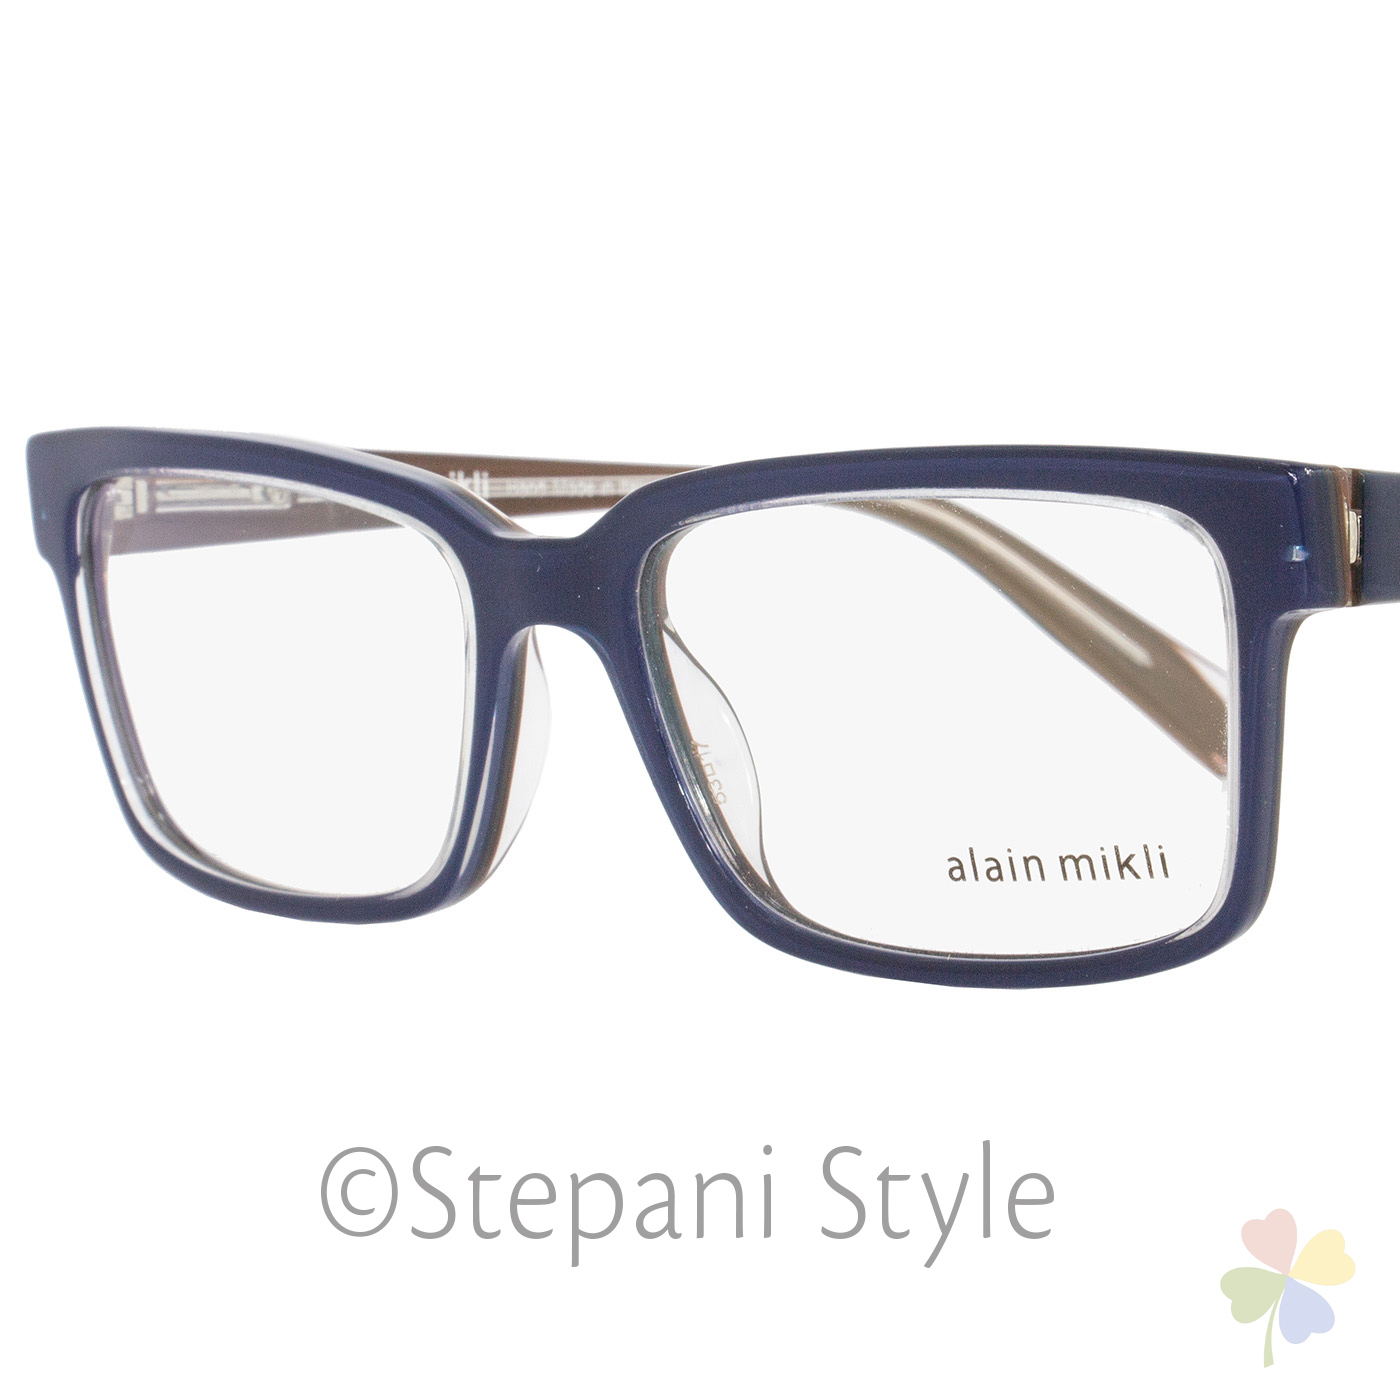 11ba90f81f Alain Mikli Rectangular Eyeglasses A03033 M0JV Size  53mm Navy Blue Clear  3033 1 of 4Only 1 available ...